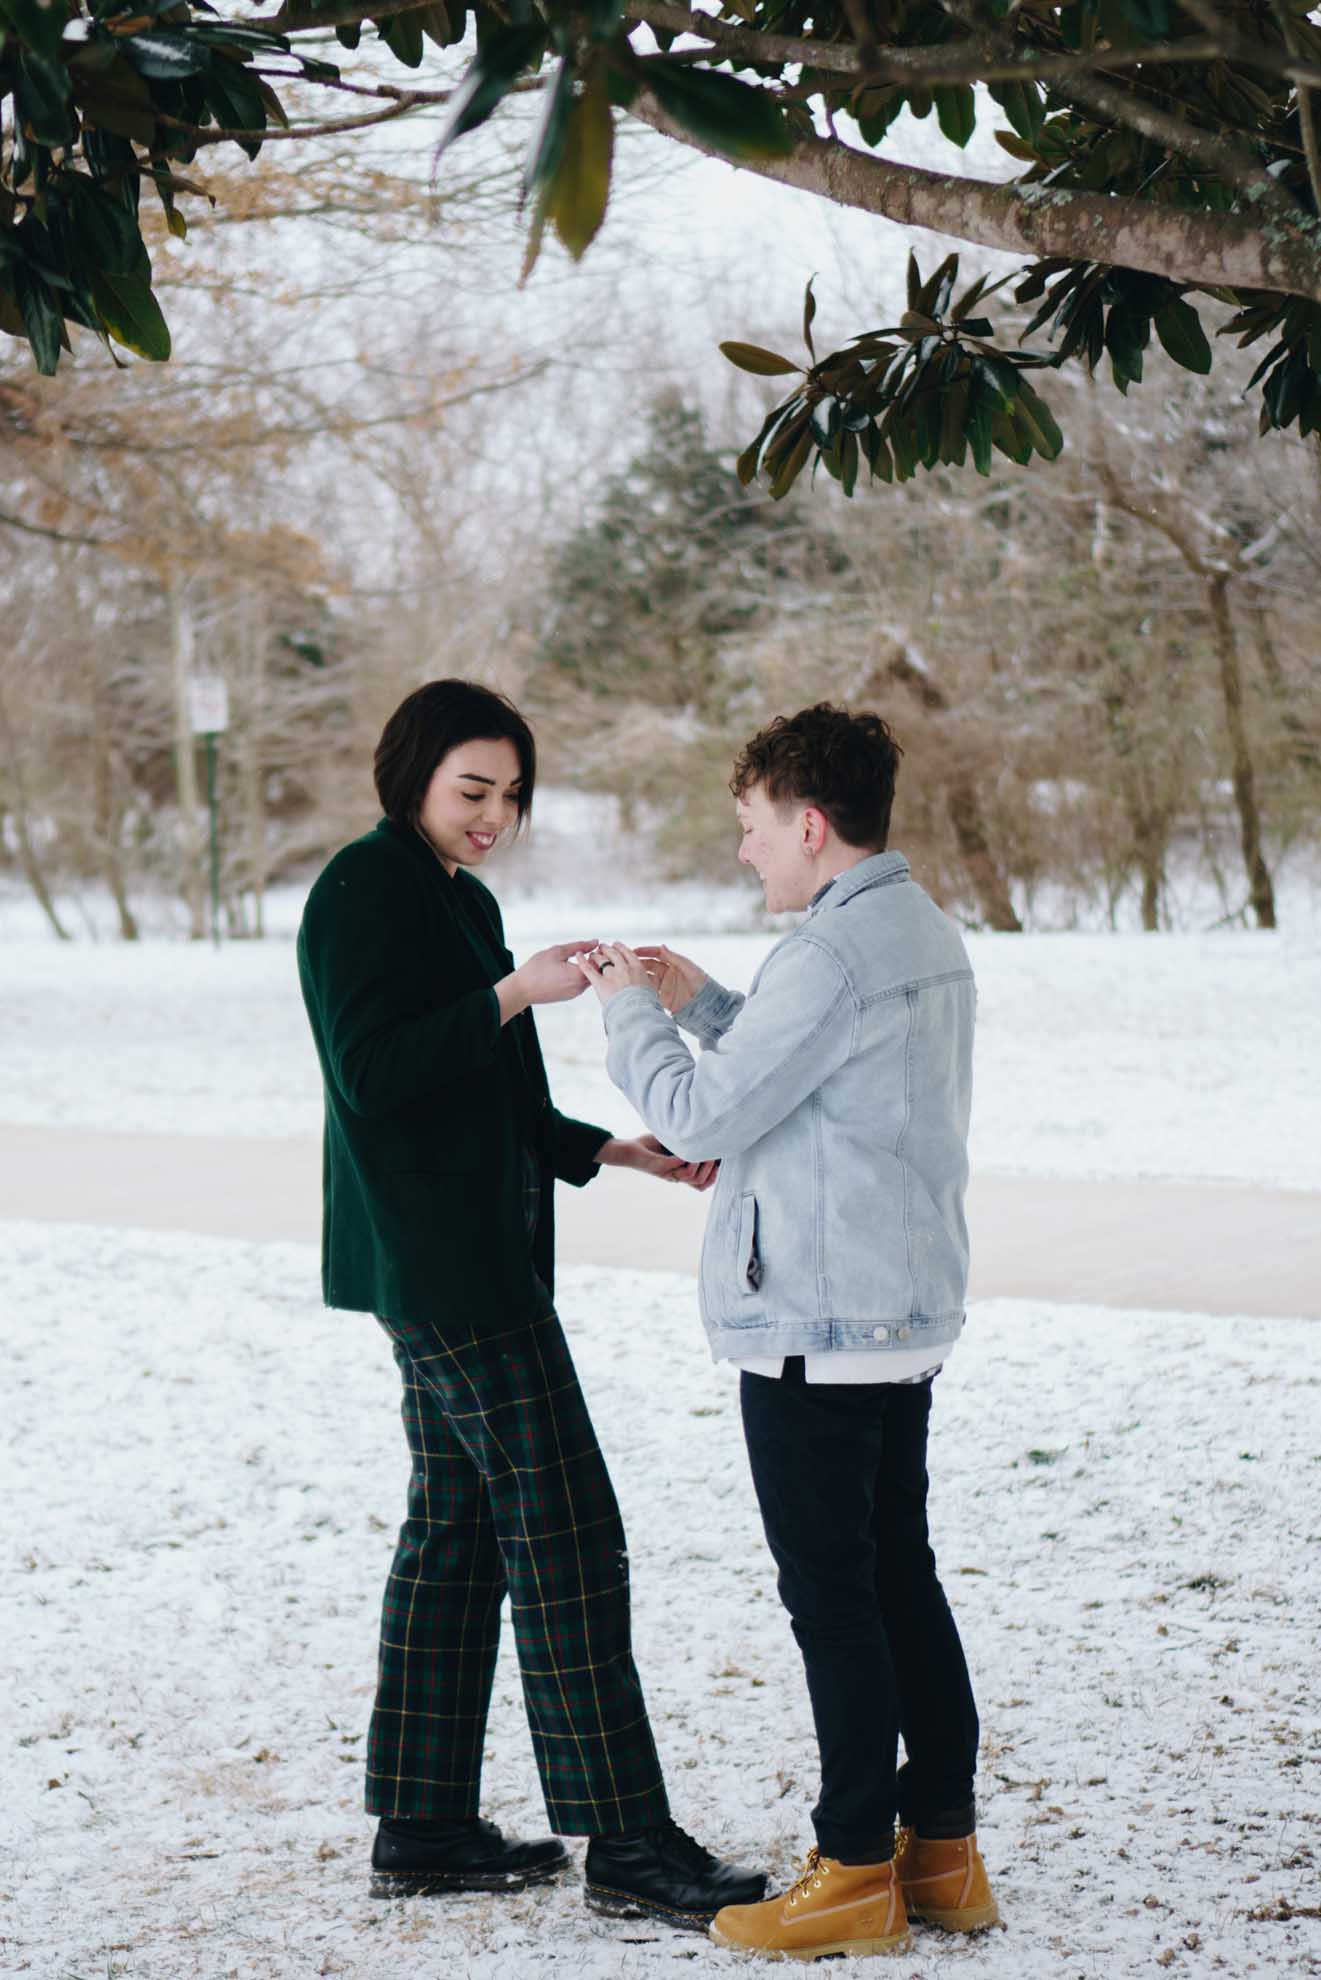 Annamarie Trank PHOTOGRAPHY lesbian queer lgbt+ couple winter America USA engagement proposal snow Dancing With Her magazine (1)